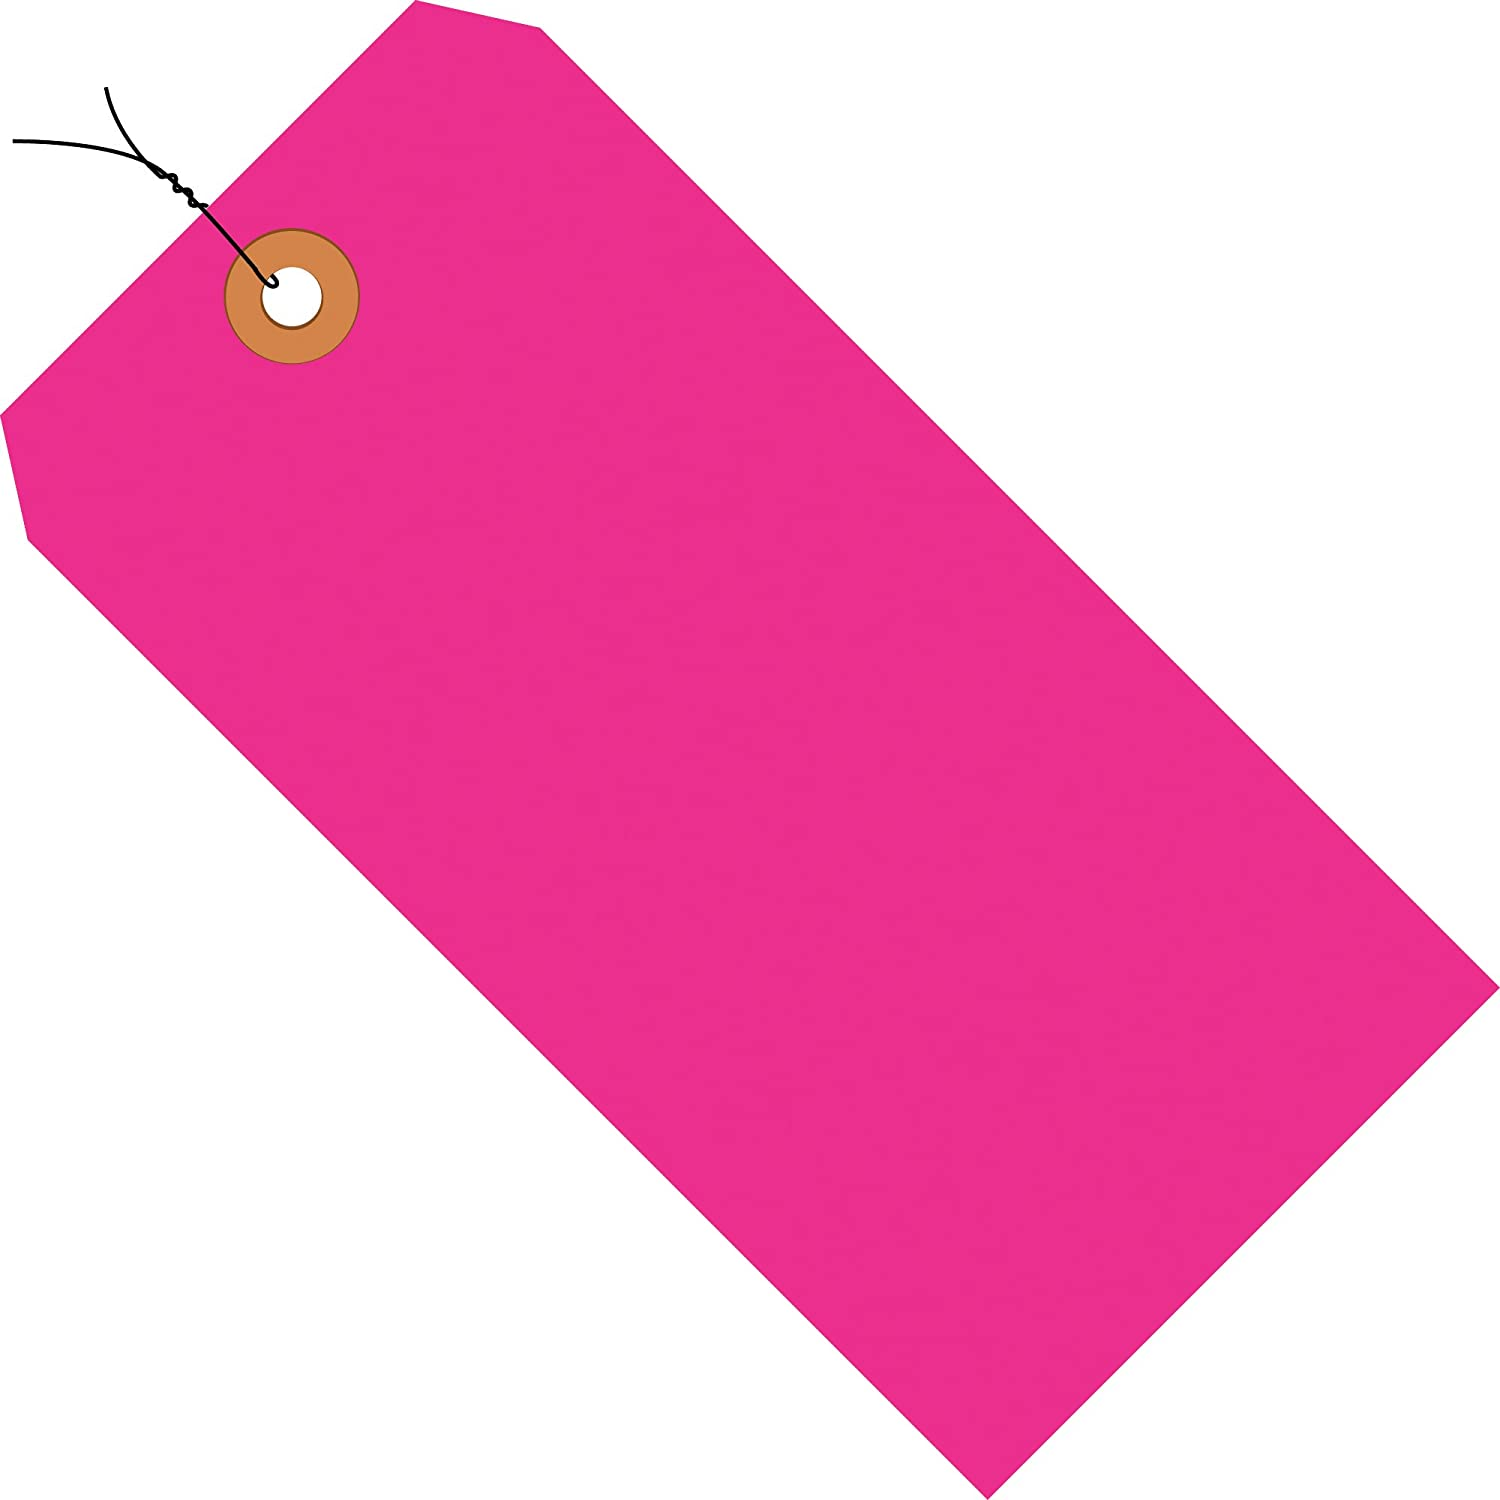 4 3//4 x 2 3//8 Fluorescent Pink Shipping Tags 13 Pt Wired Case of 1000 5,